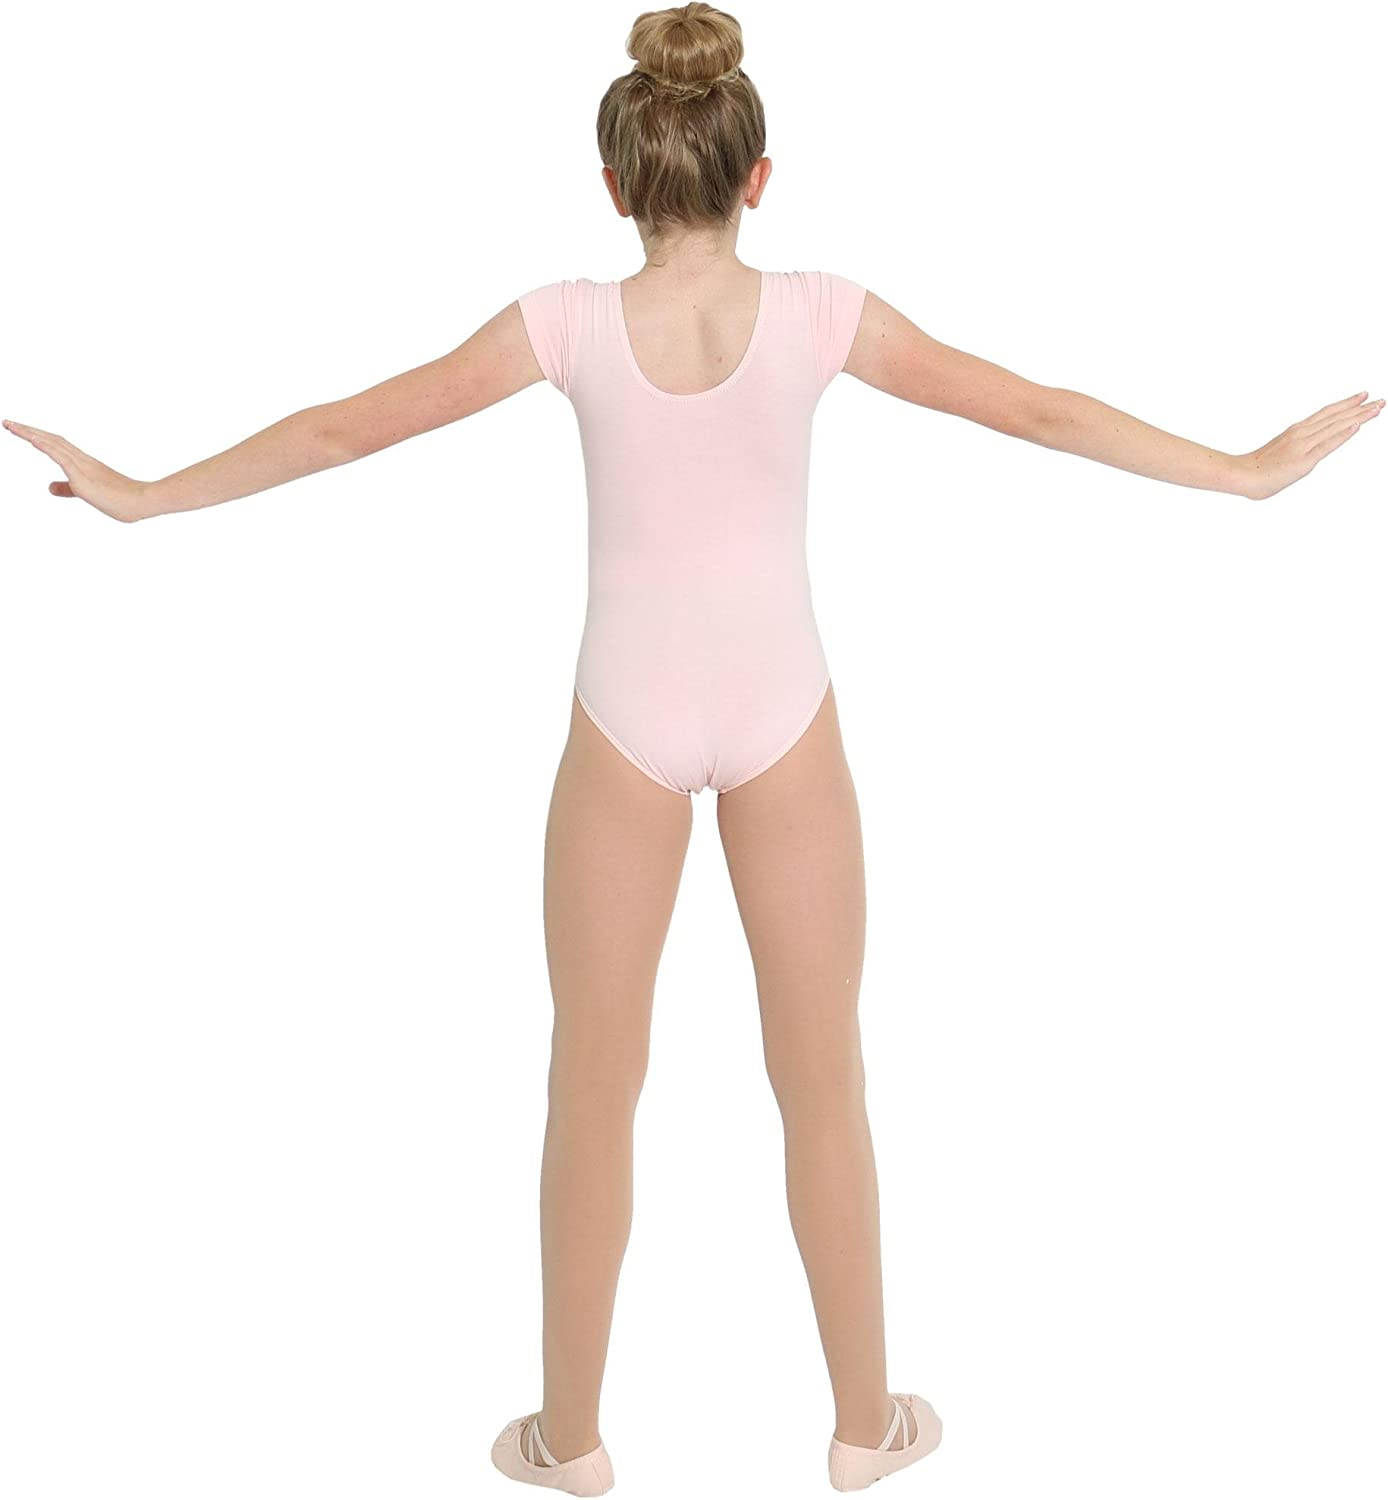 Danzcue Girls Cotton Short Sleeve Ballet Cut Leotard